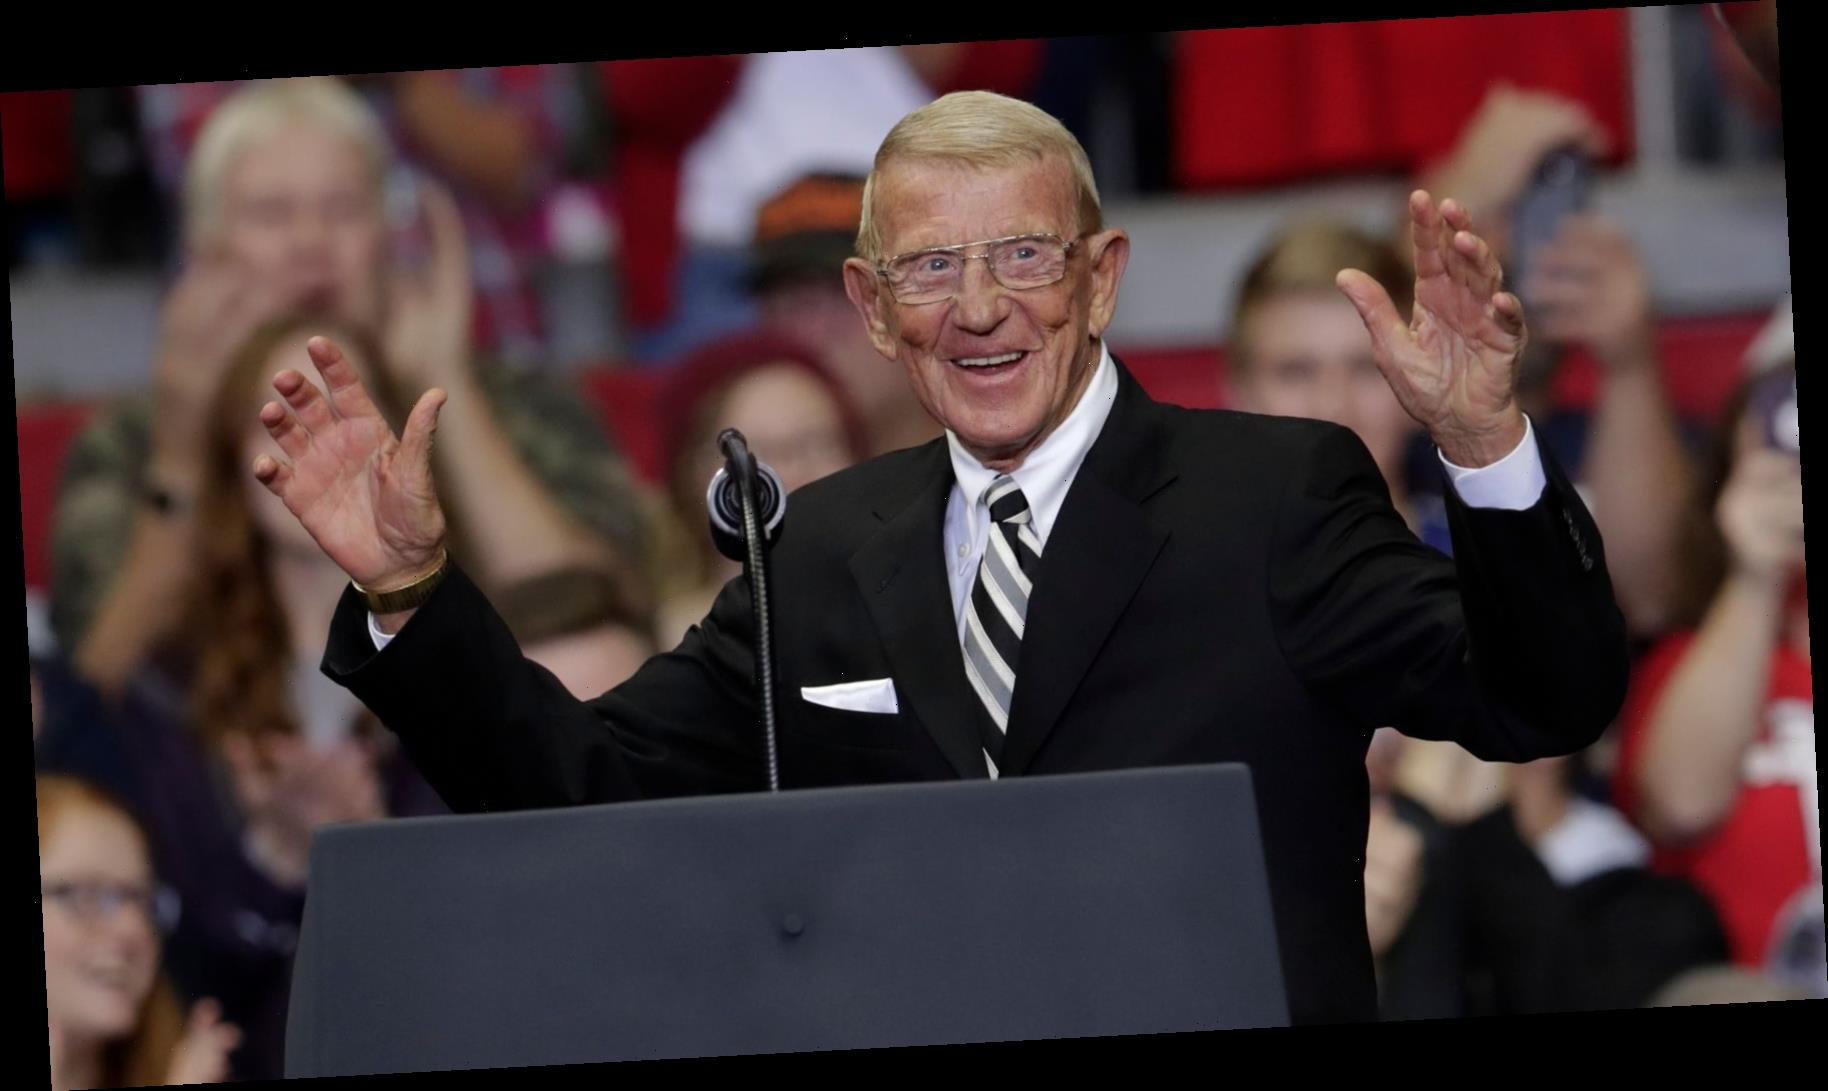 Trump To Award Football Coach Lou Holtz With Medal of Freedom